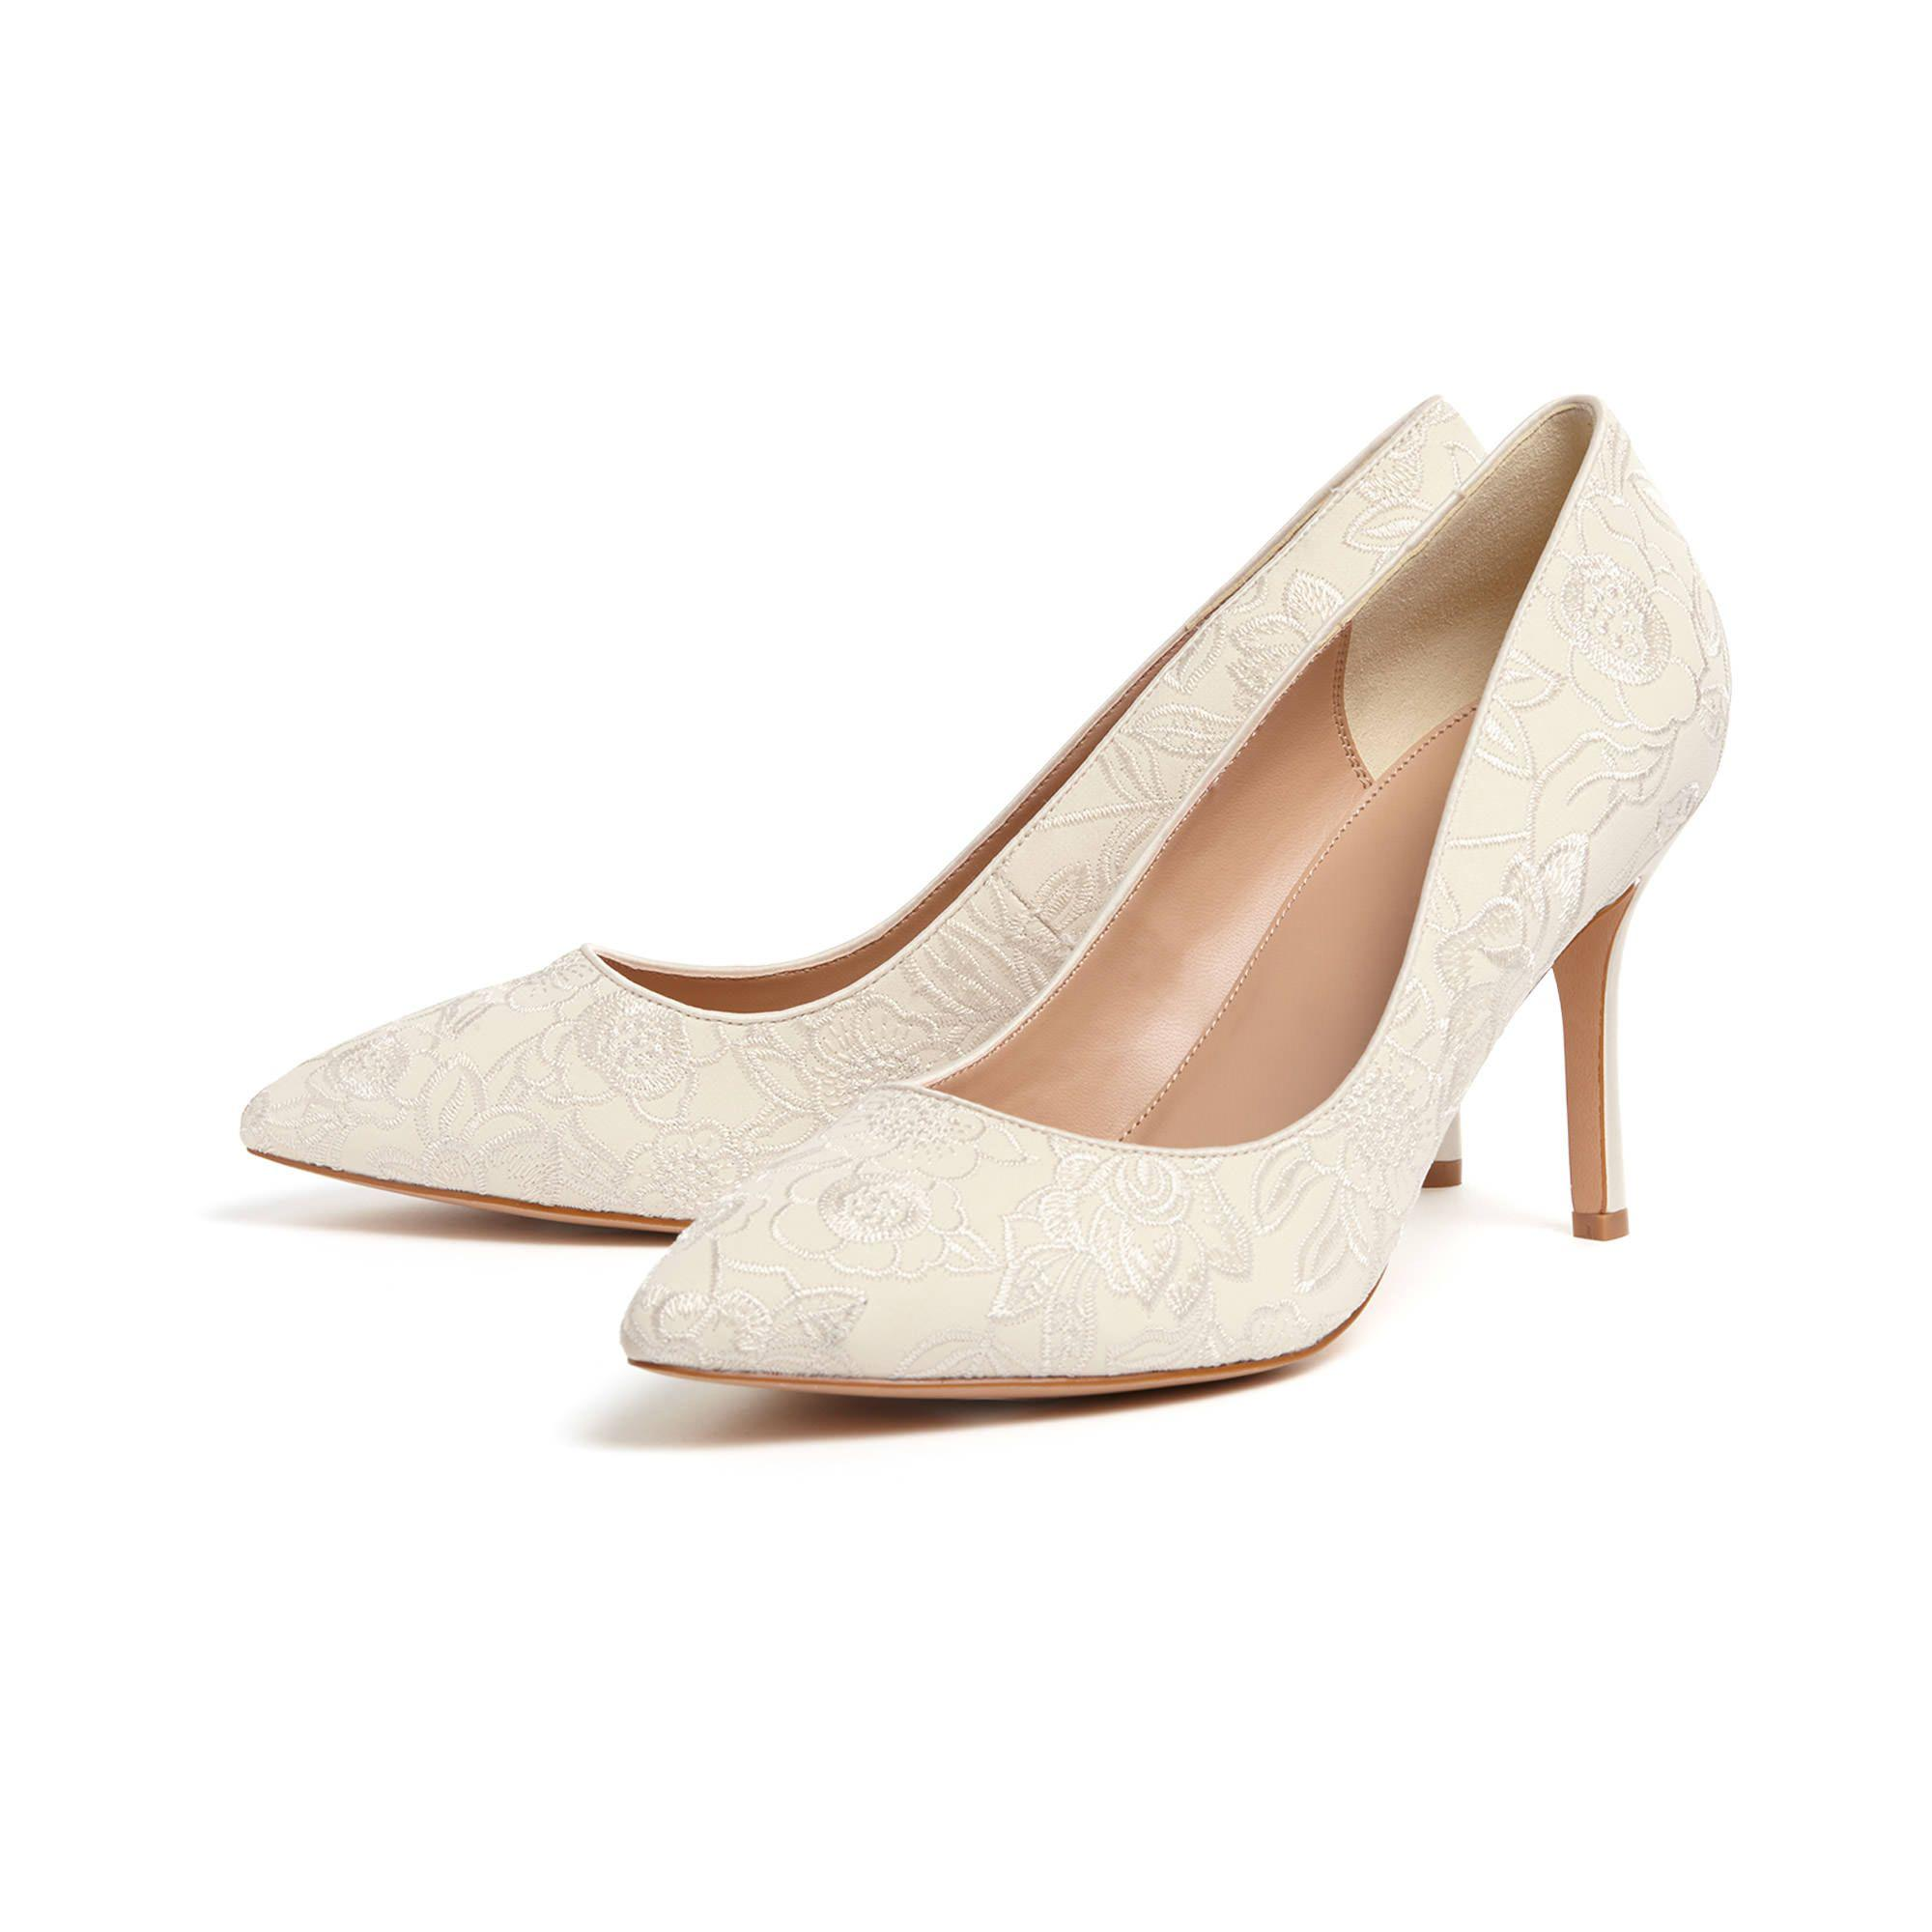 order online for sale top quality Cream ceri embroidered lace point court shoes 2015 cheap price uvd2BRj